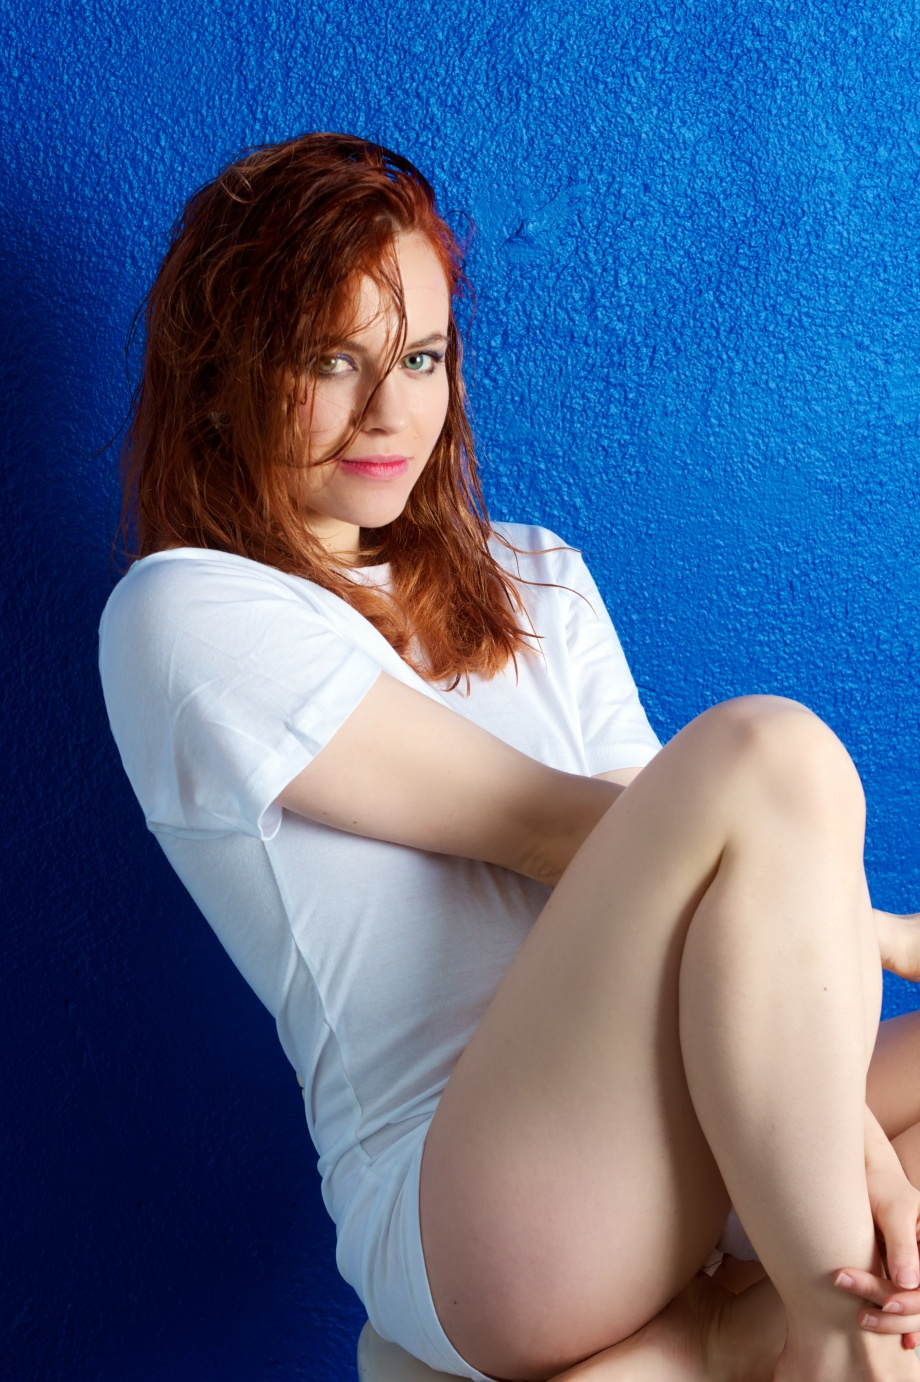 Roksi, Applecore, Cork, Model, Studio, Photoshoot, Glamour, Portrait, red hair, wet hair, blue